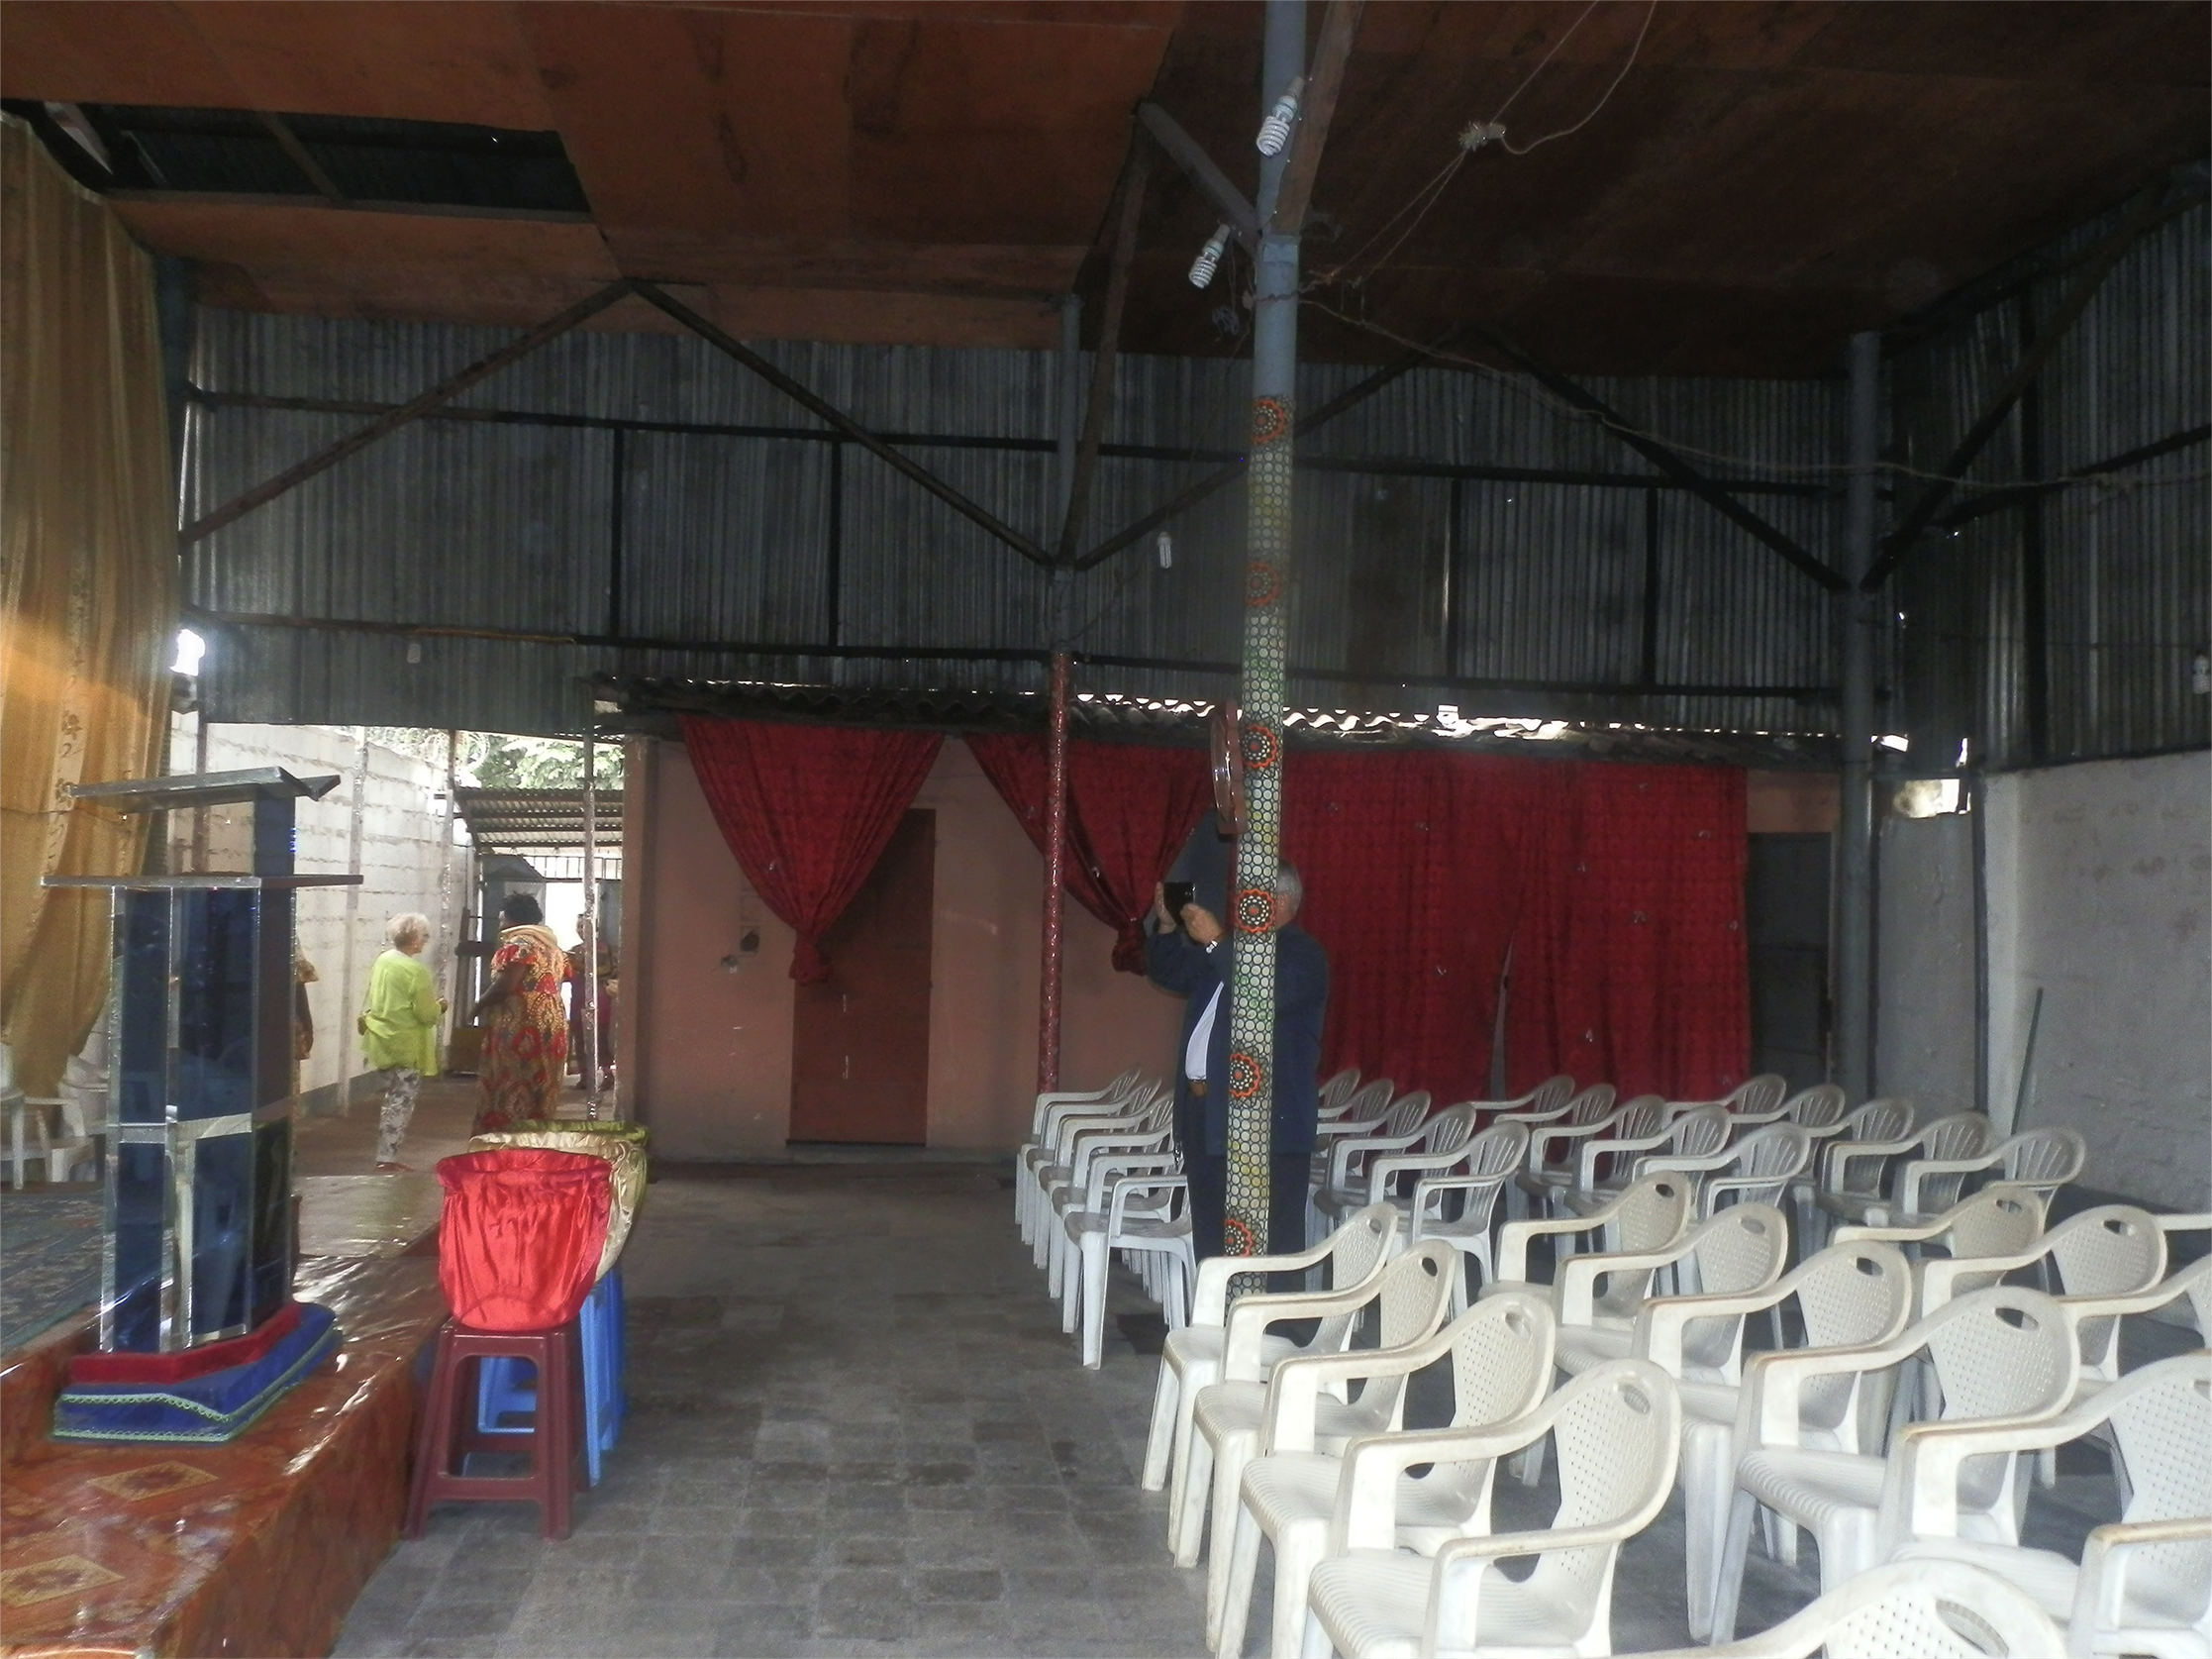 Inside the large square building to be renovated for the Women's Center